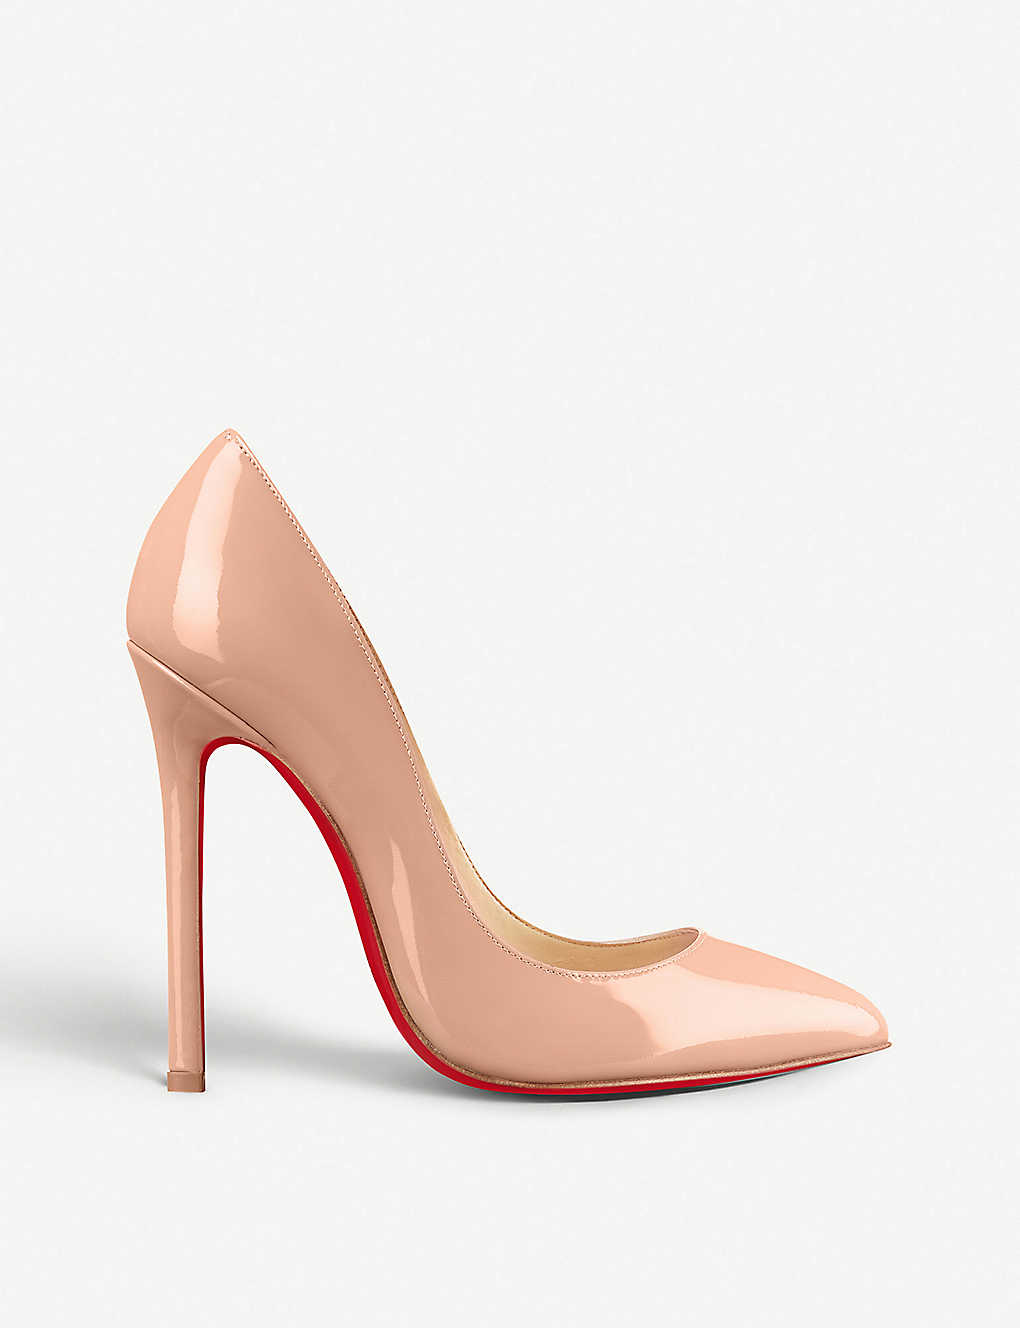 5f76a293647f CHRISTIAN LOUBOUTIN - Pigalle 120 patent calf